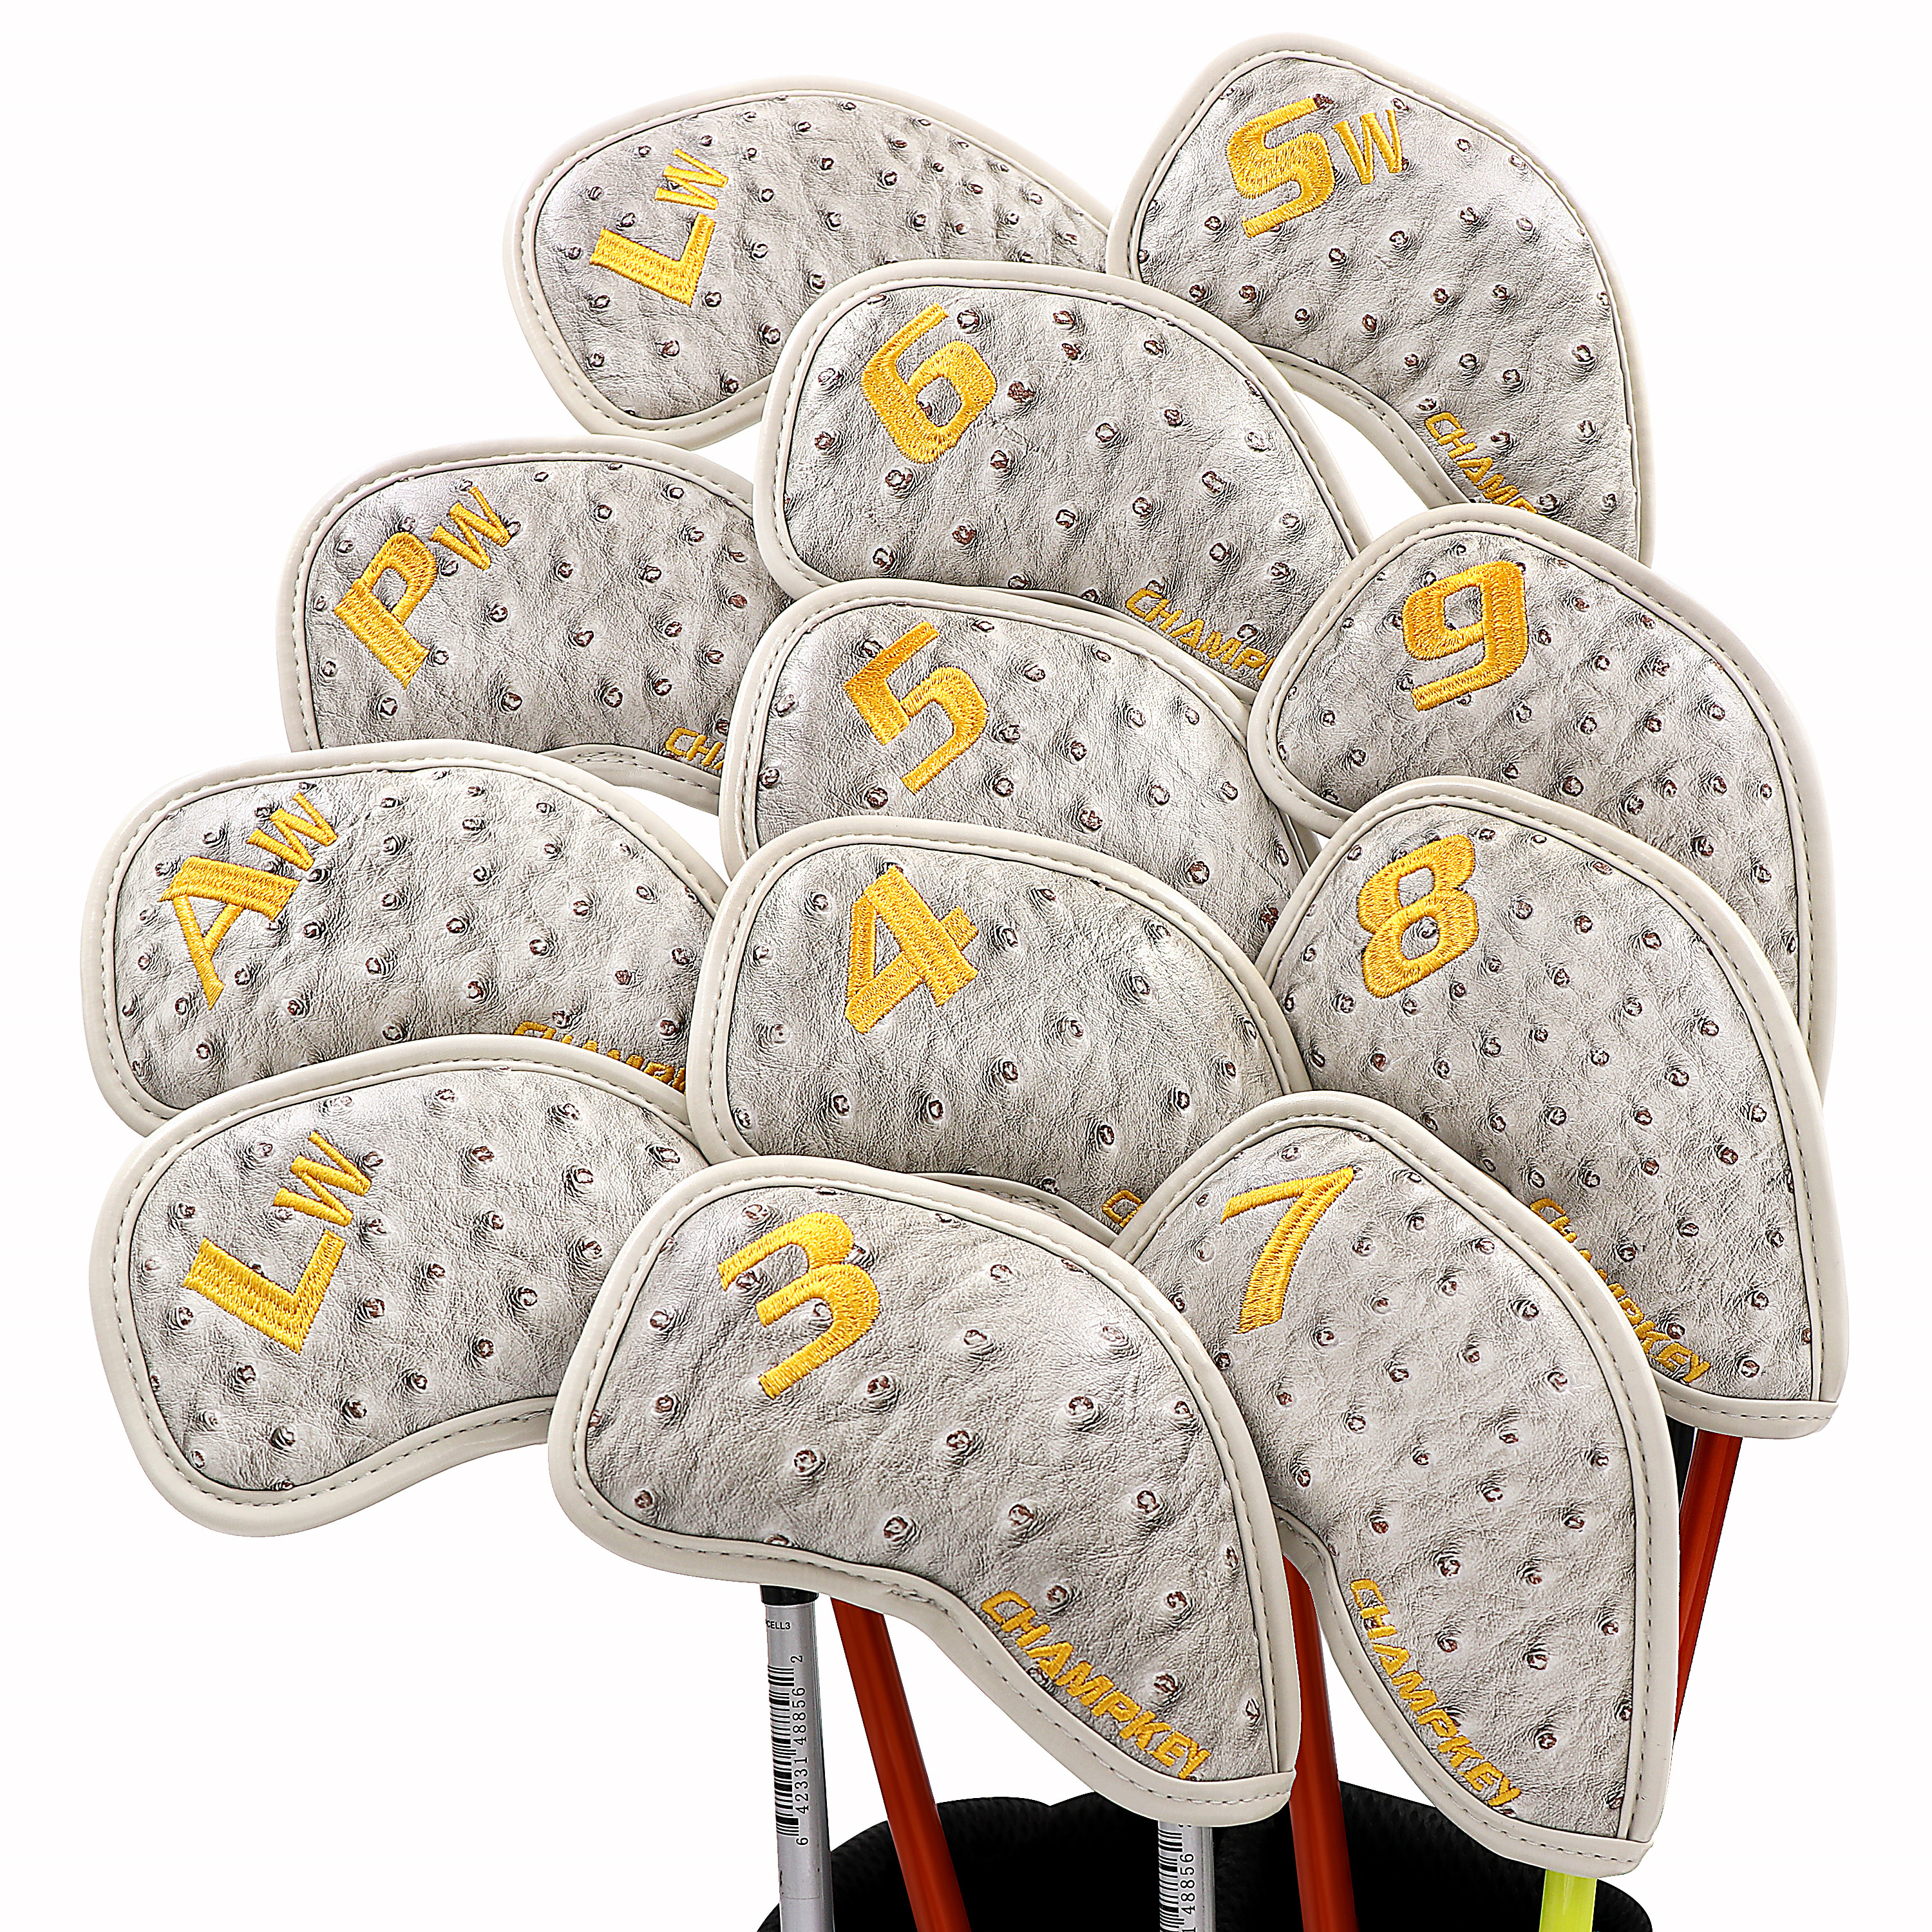 NEW Champkey 12pcs Golf Iron Cover Headcover Golf Iron Head Covers 3 Colors PU Leather With Breath Holes Golf Club Iron Covers